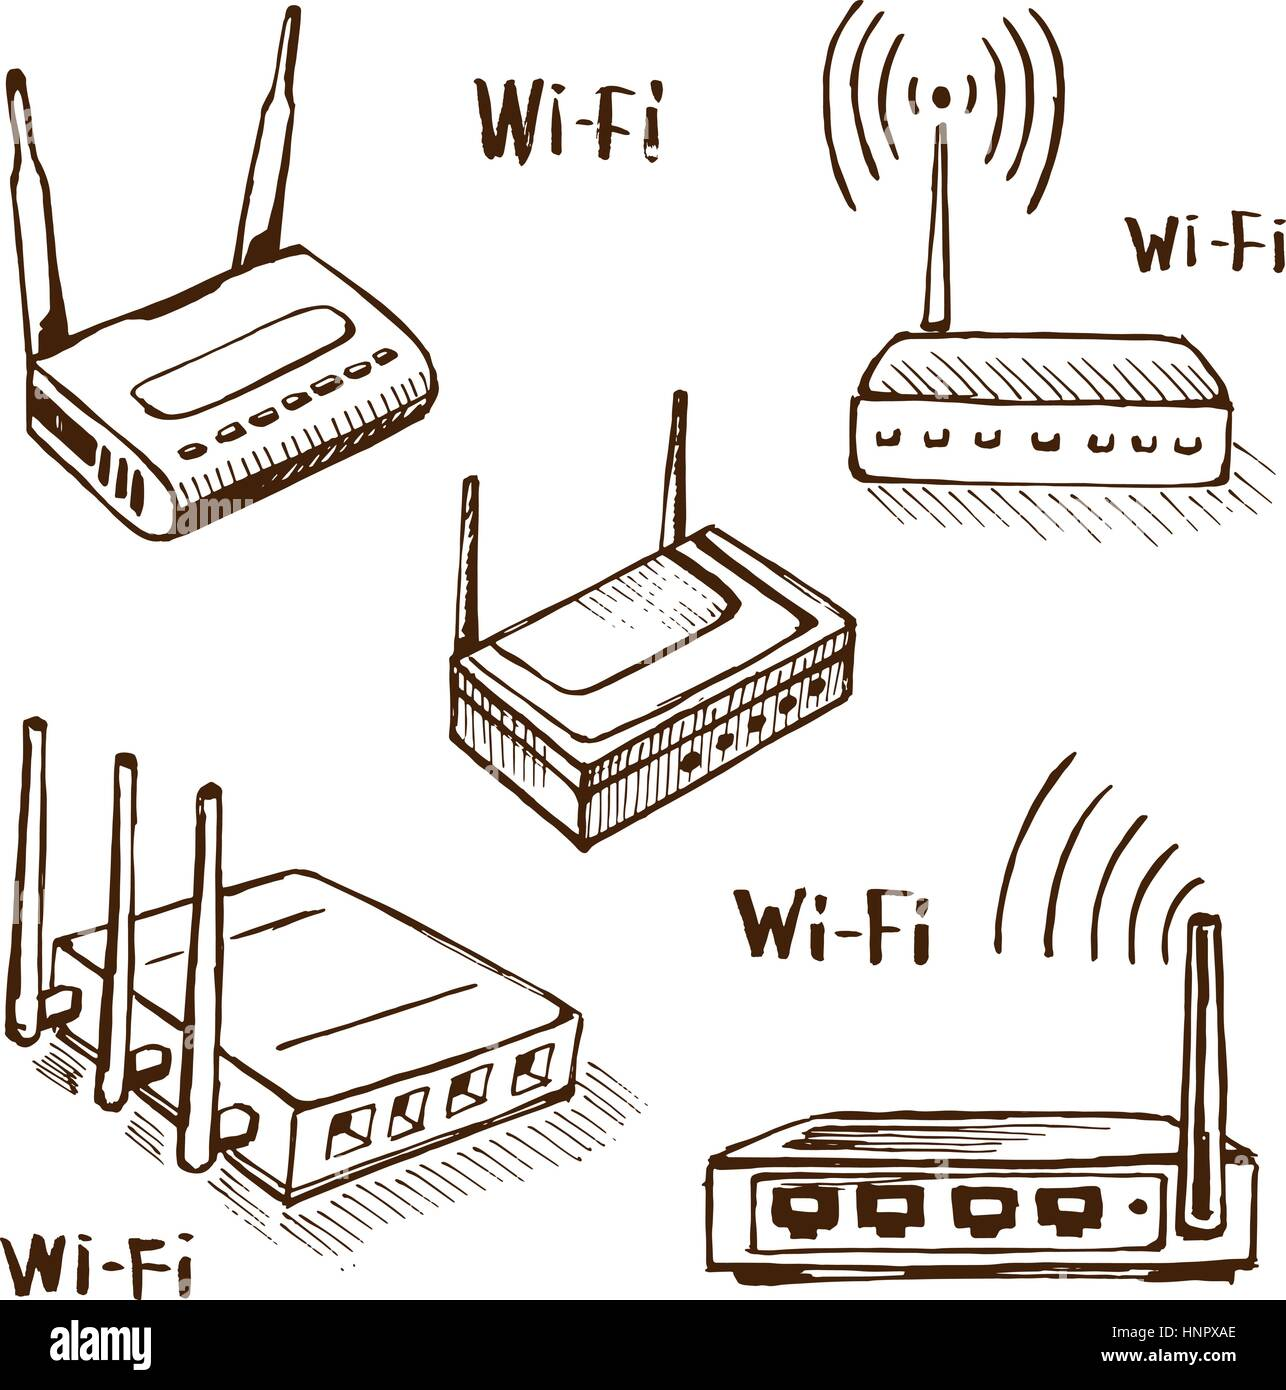 Wireless router vector sketch - Stock Image